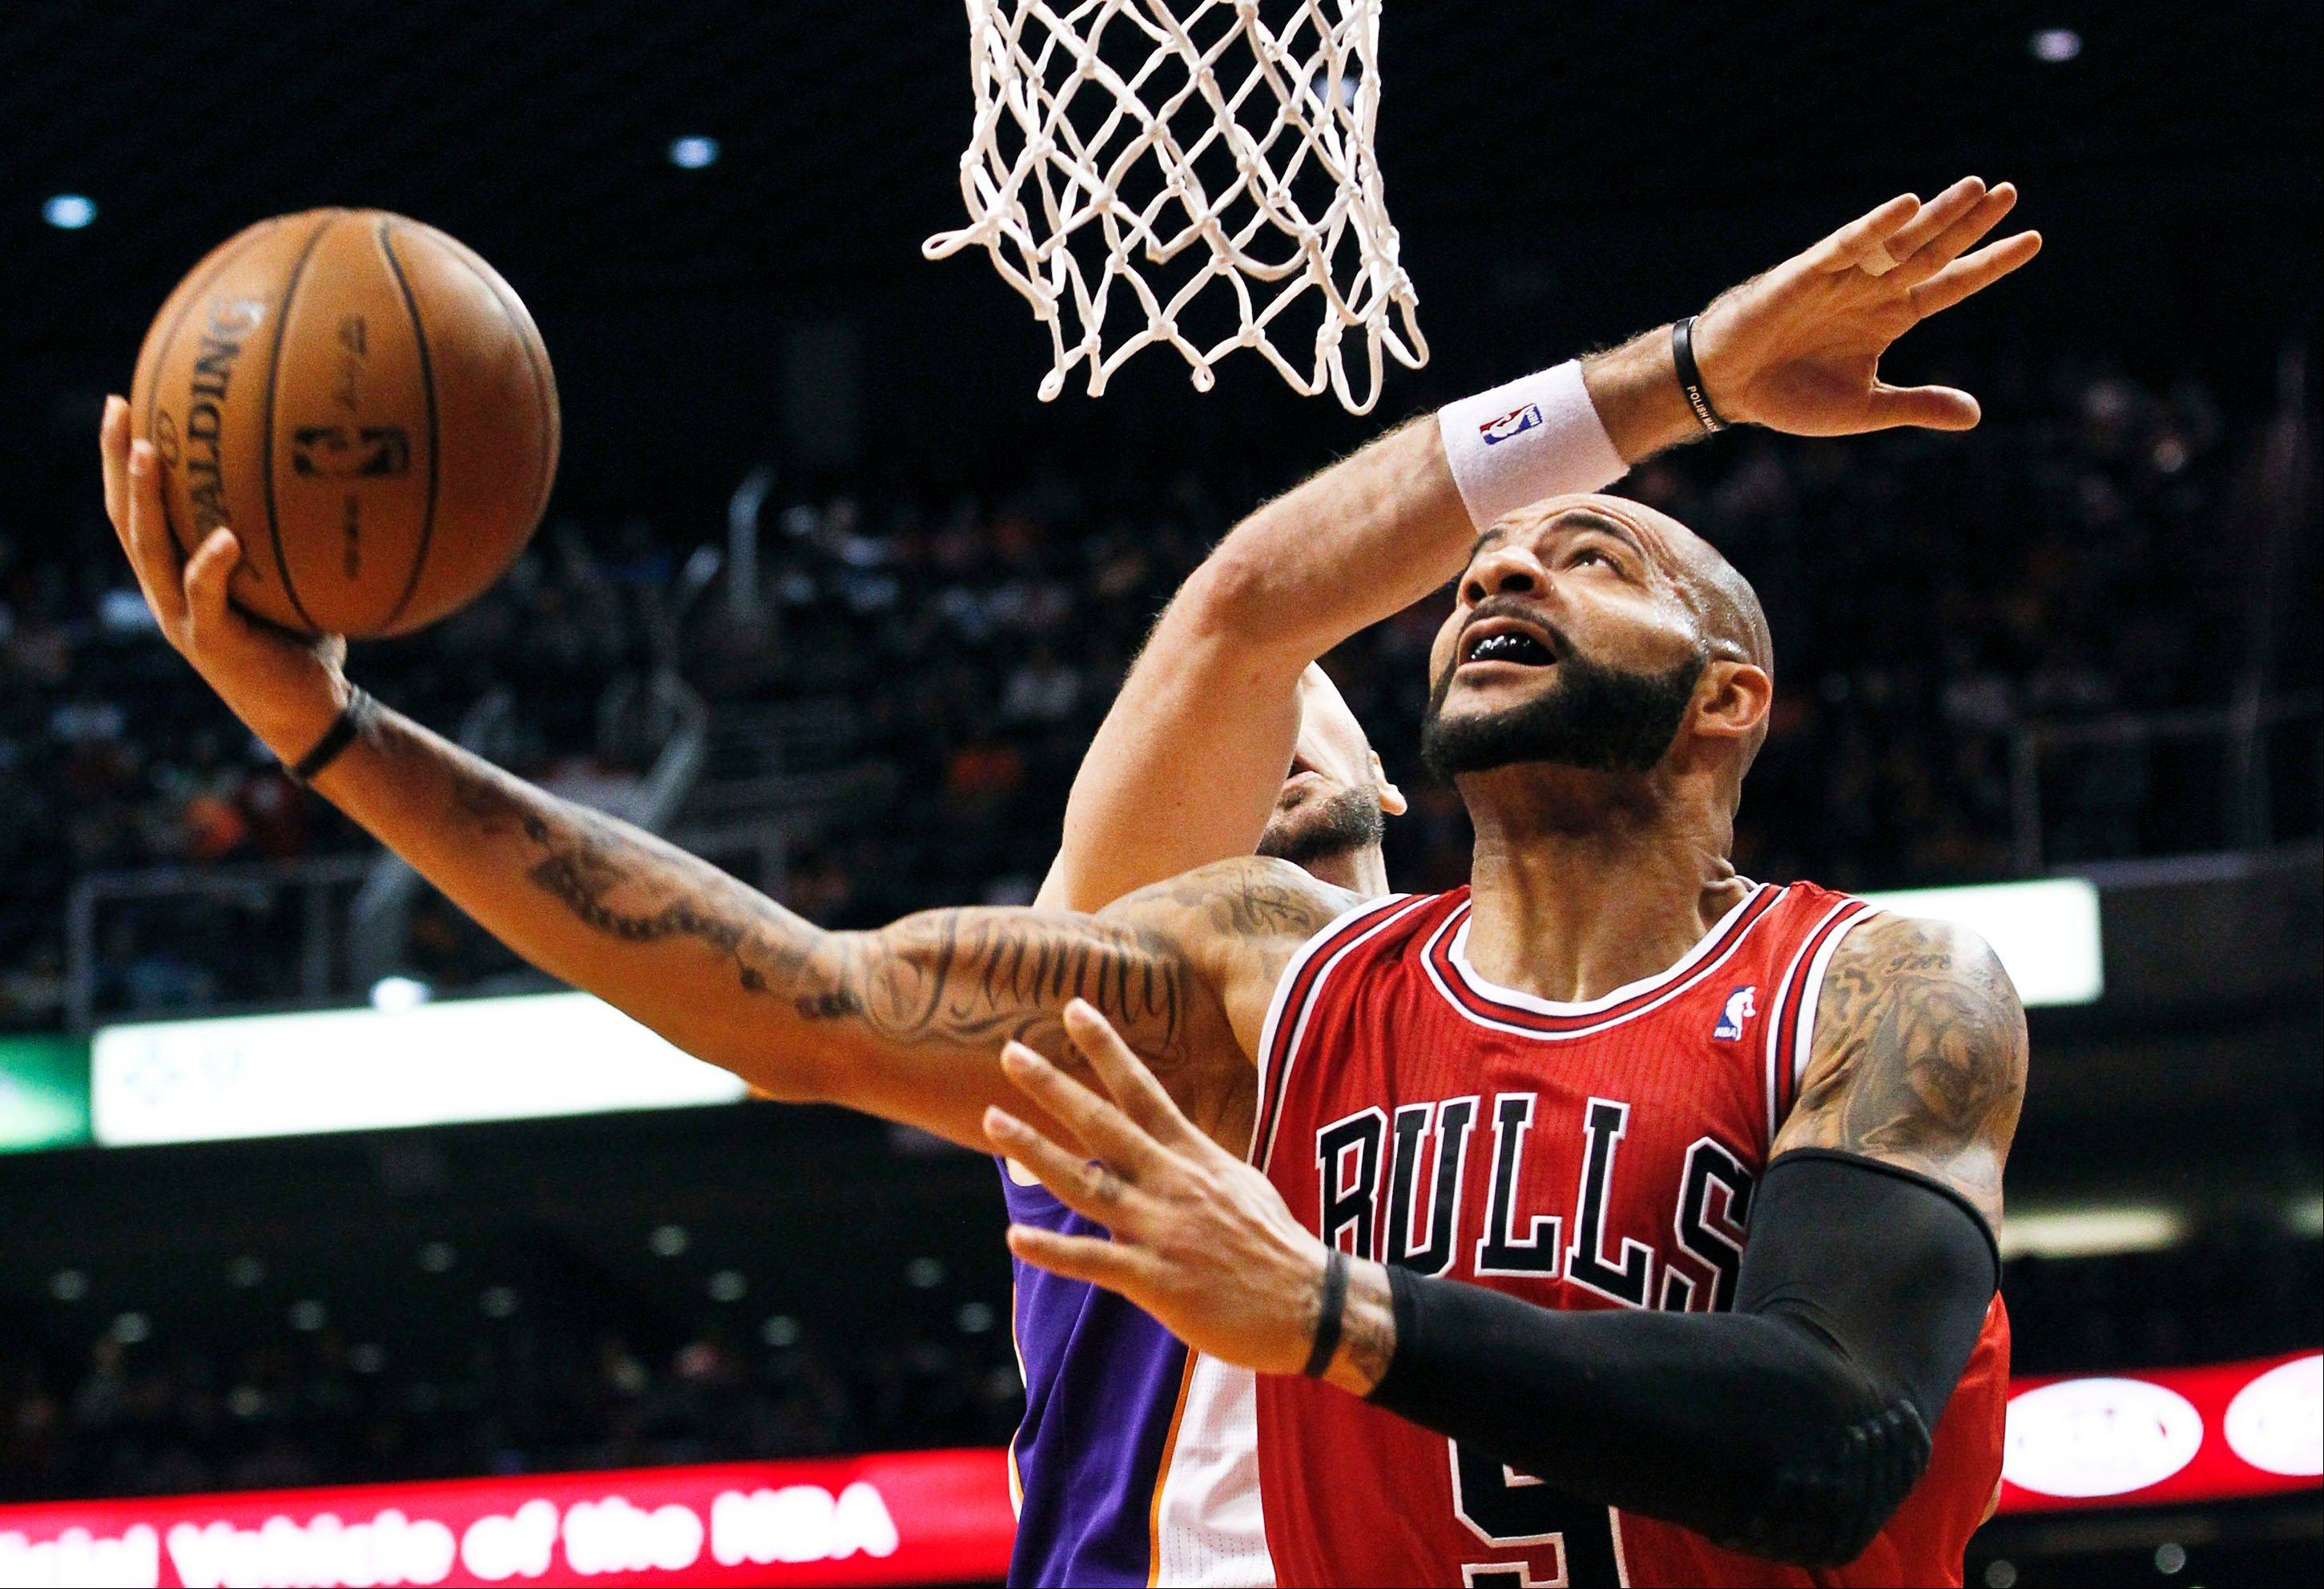 Bulls forward Carlos Boozer, front, shoots past the Phoenix Suns' Marcin Gortat Wednesday during the first half in Phoenix.